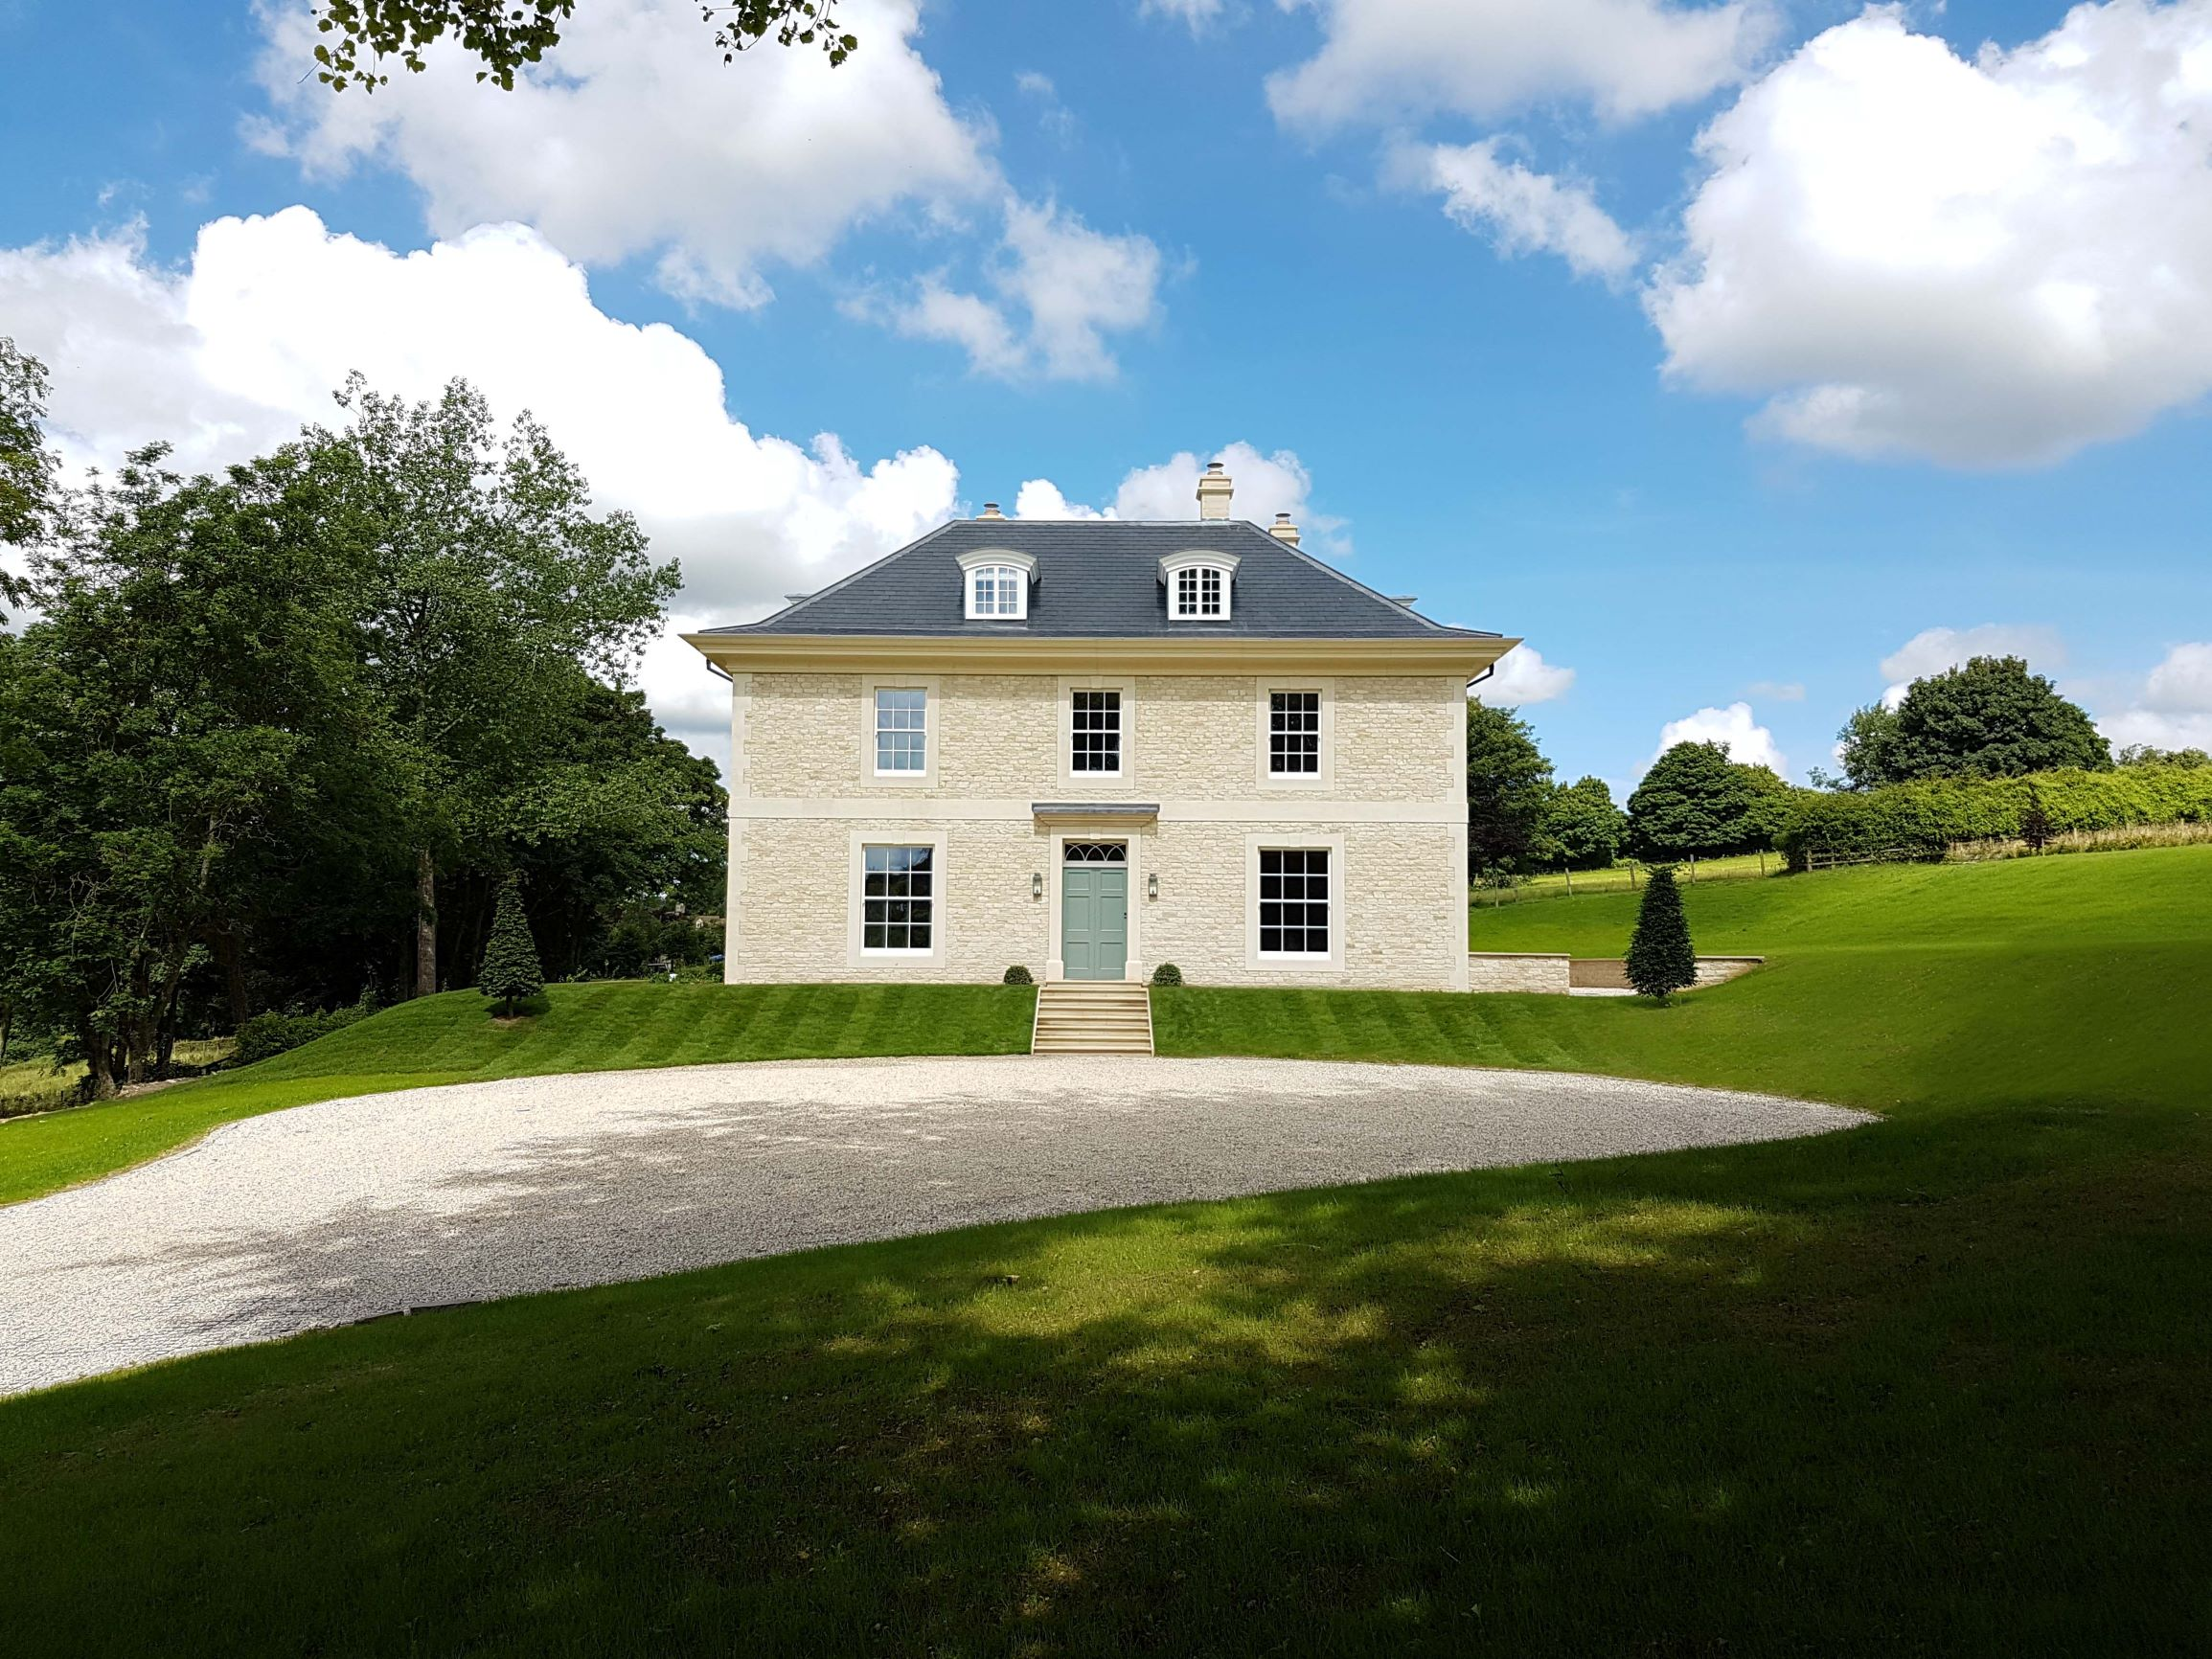 Chedworth House by Wiltshire architects Richmond Bell Architects